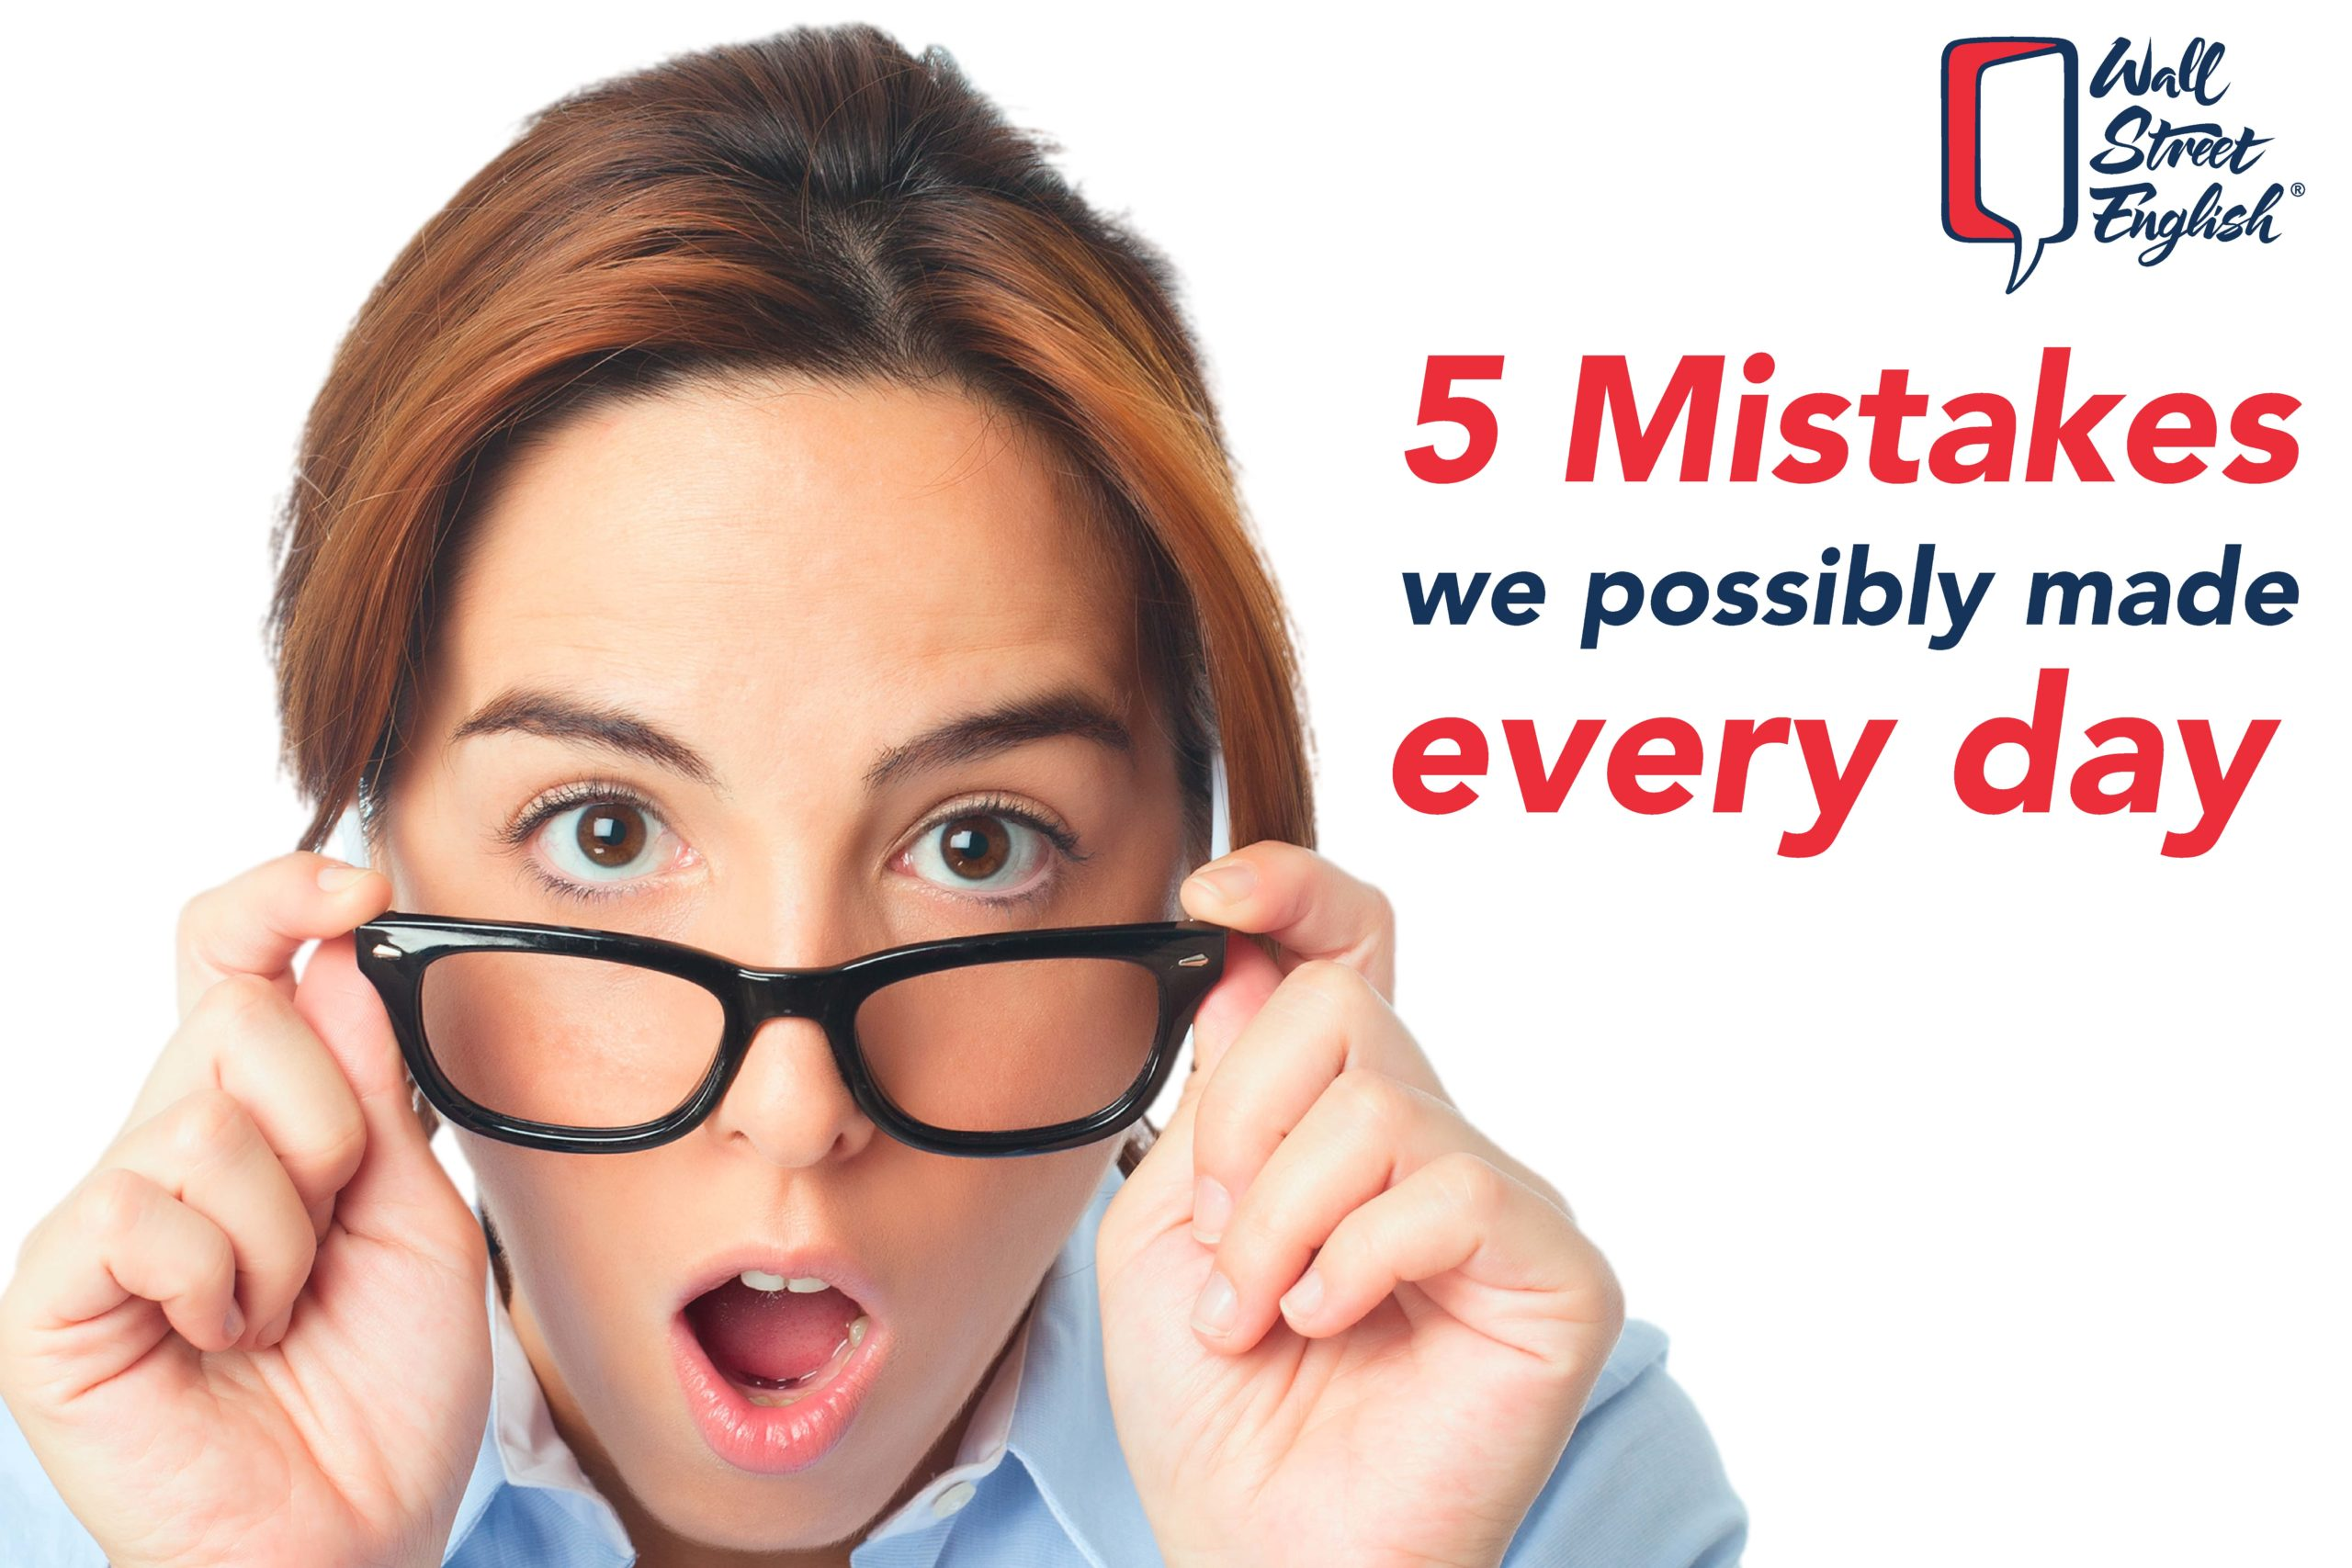 5 Mistakes we possibly made every day